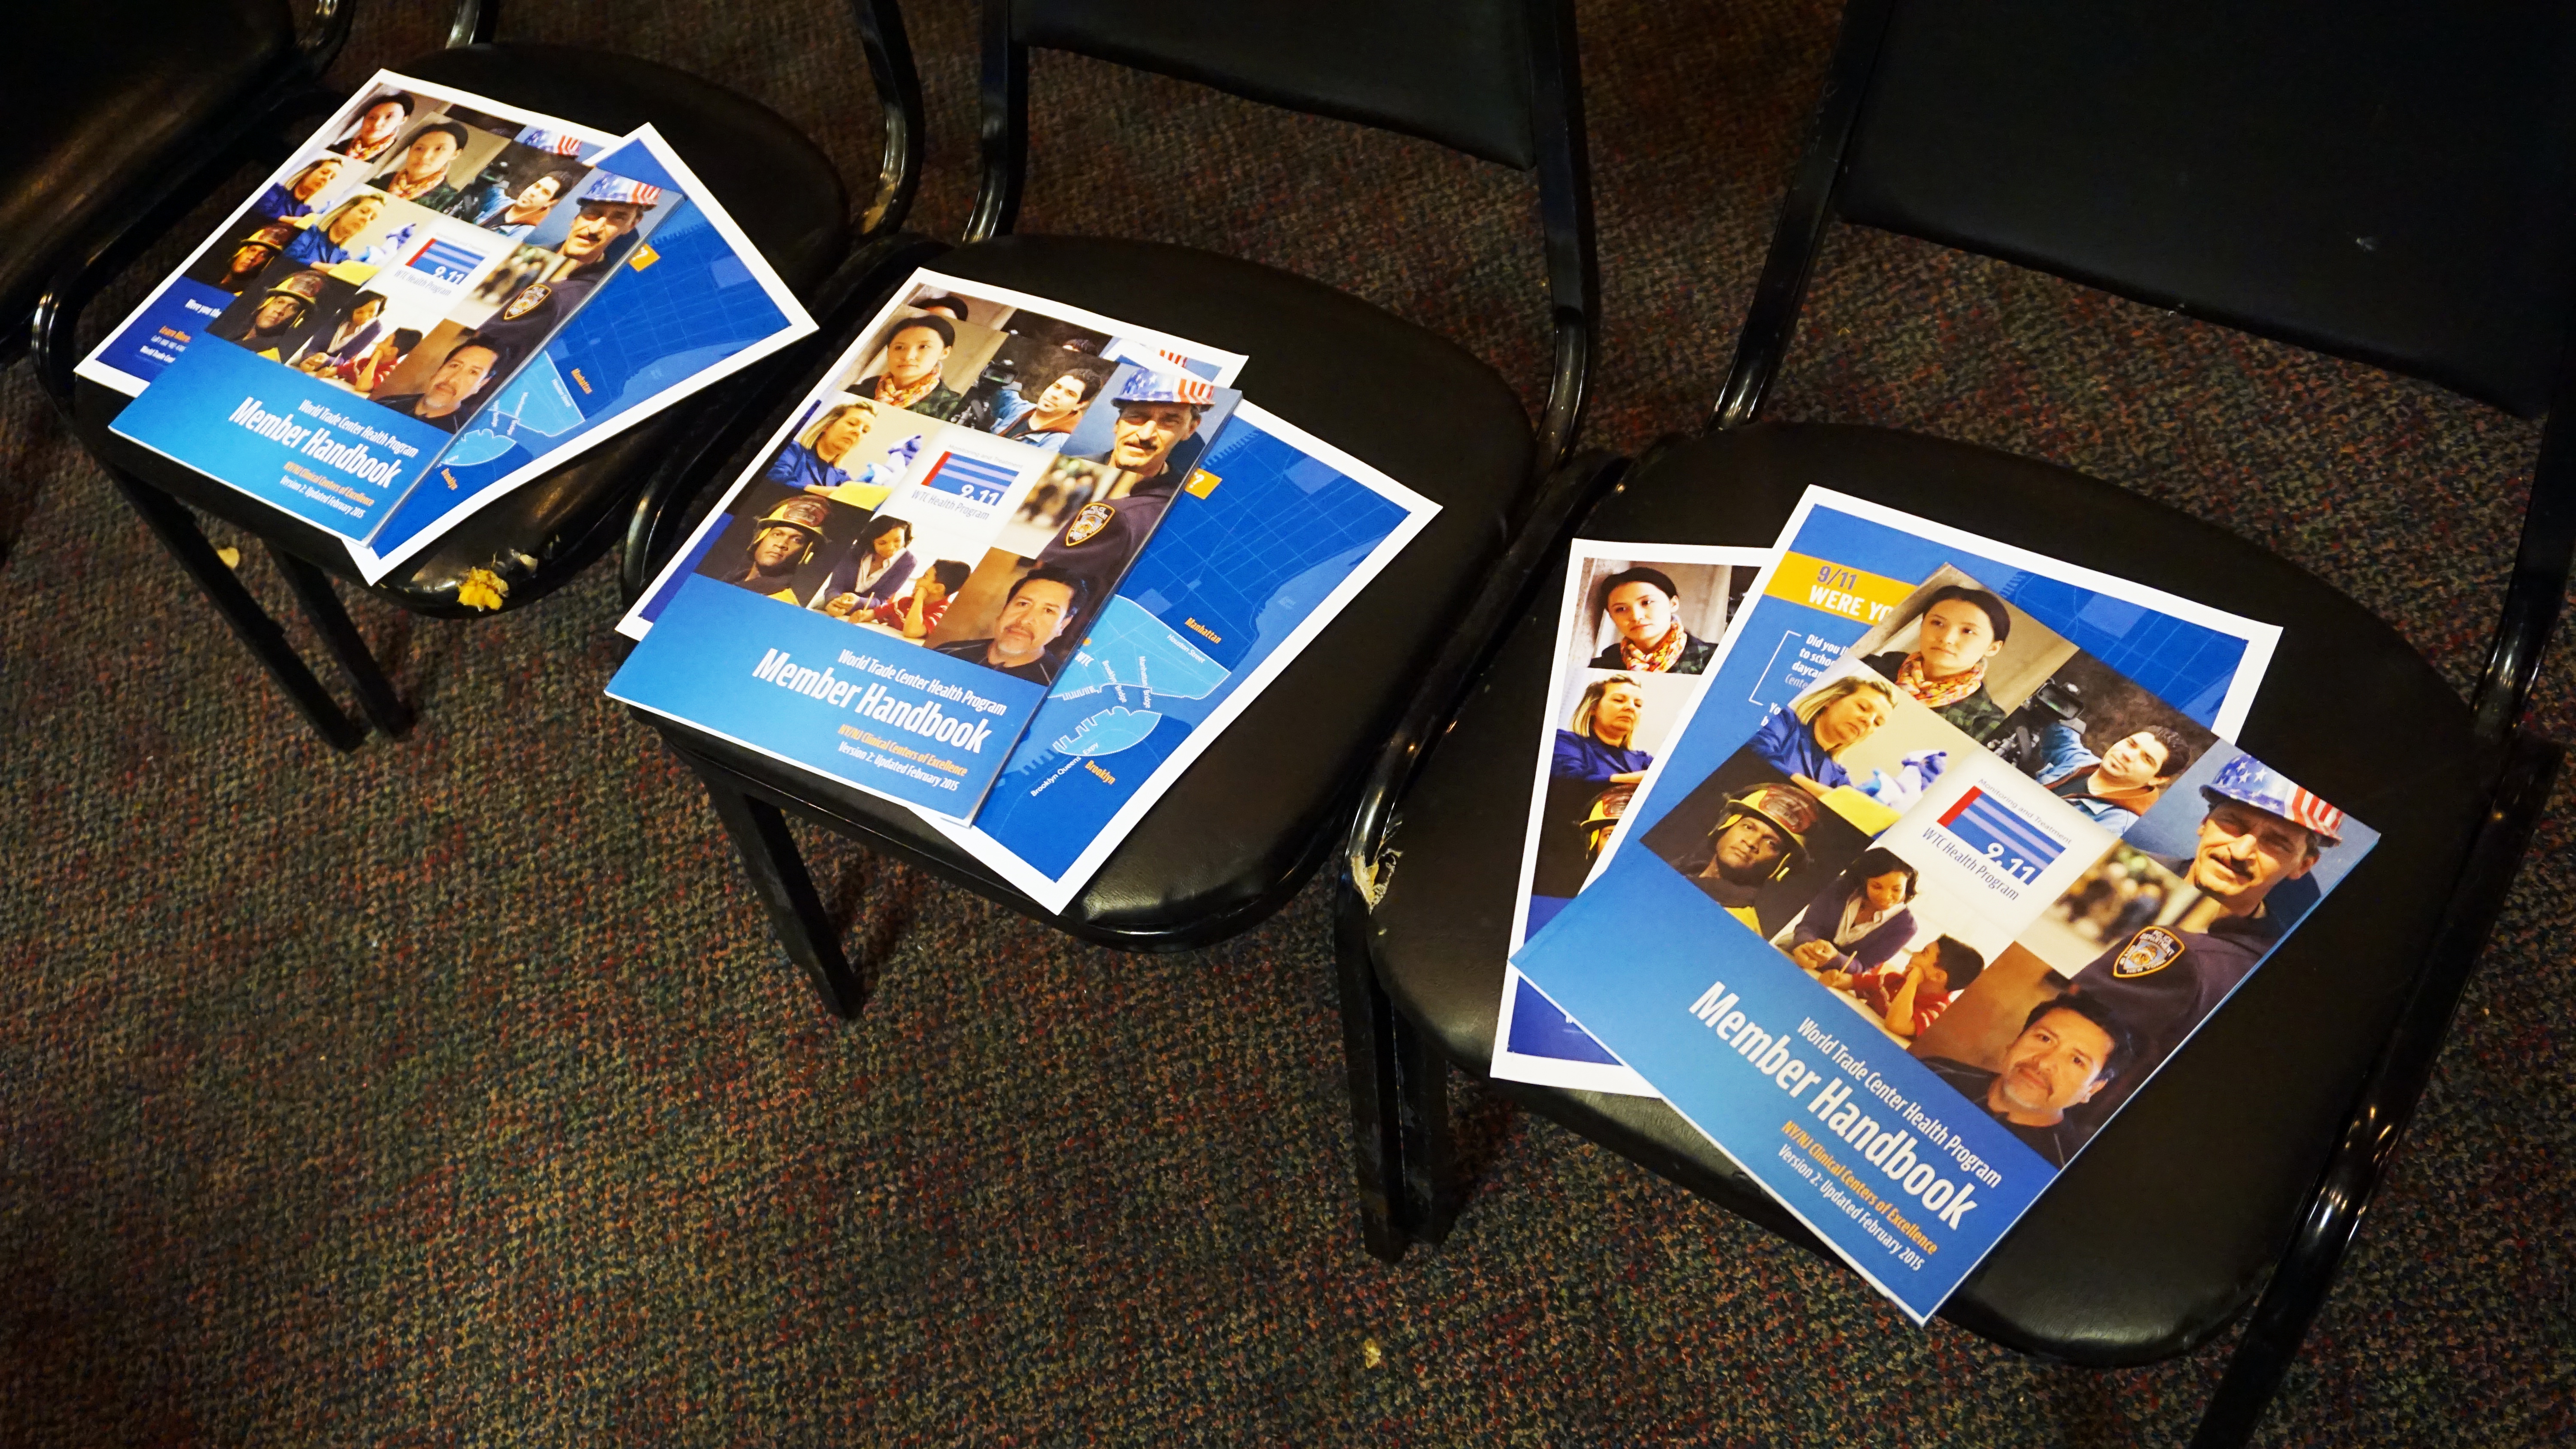 World Trade Center Health Program Member Handbooks are placed on seats for a FealGood Foundation Outreach and Education session to enroll 9/11 responders and survivors into the health program in Philadelphia, Pennsylvania on April 1, 2016. Photo by: Suneet Mahandru